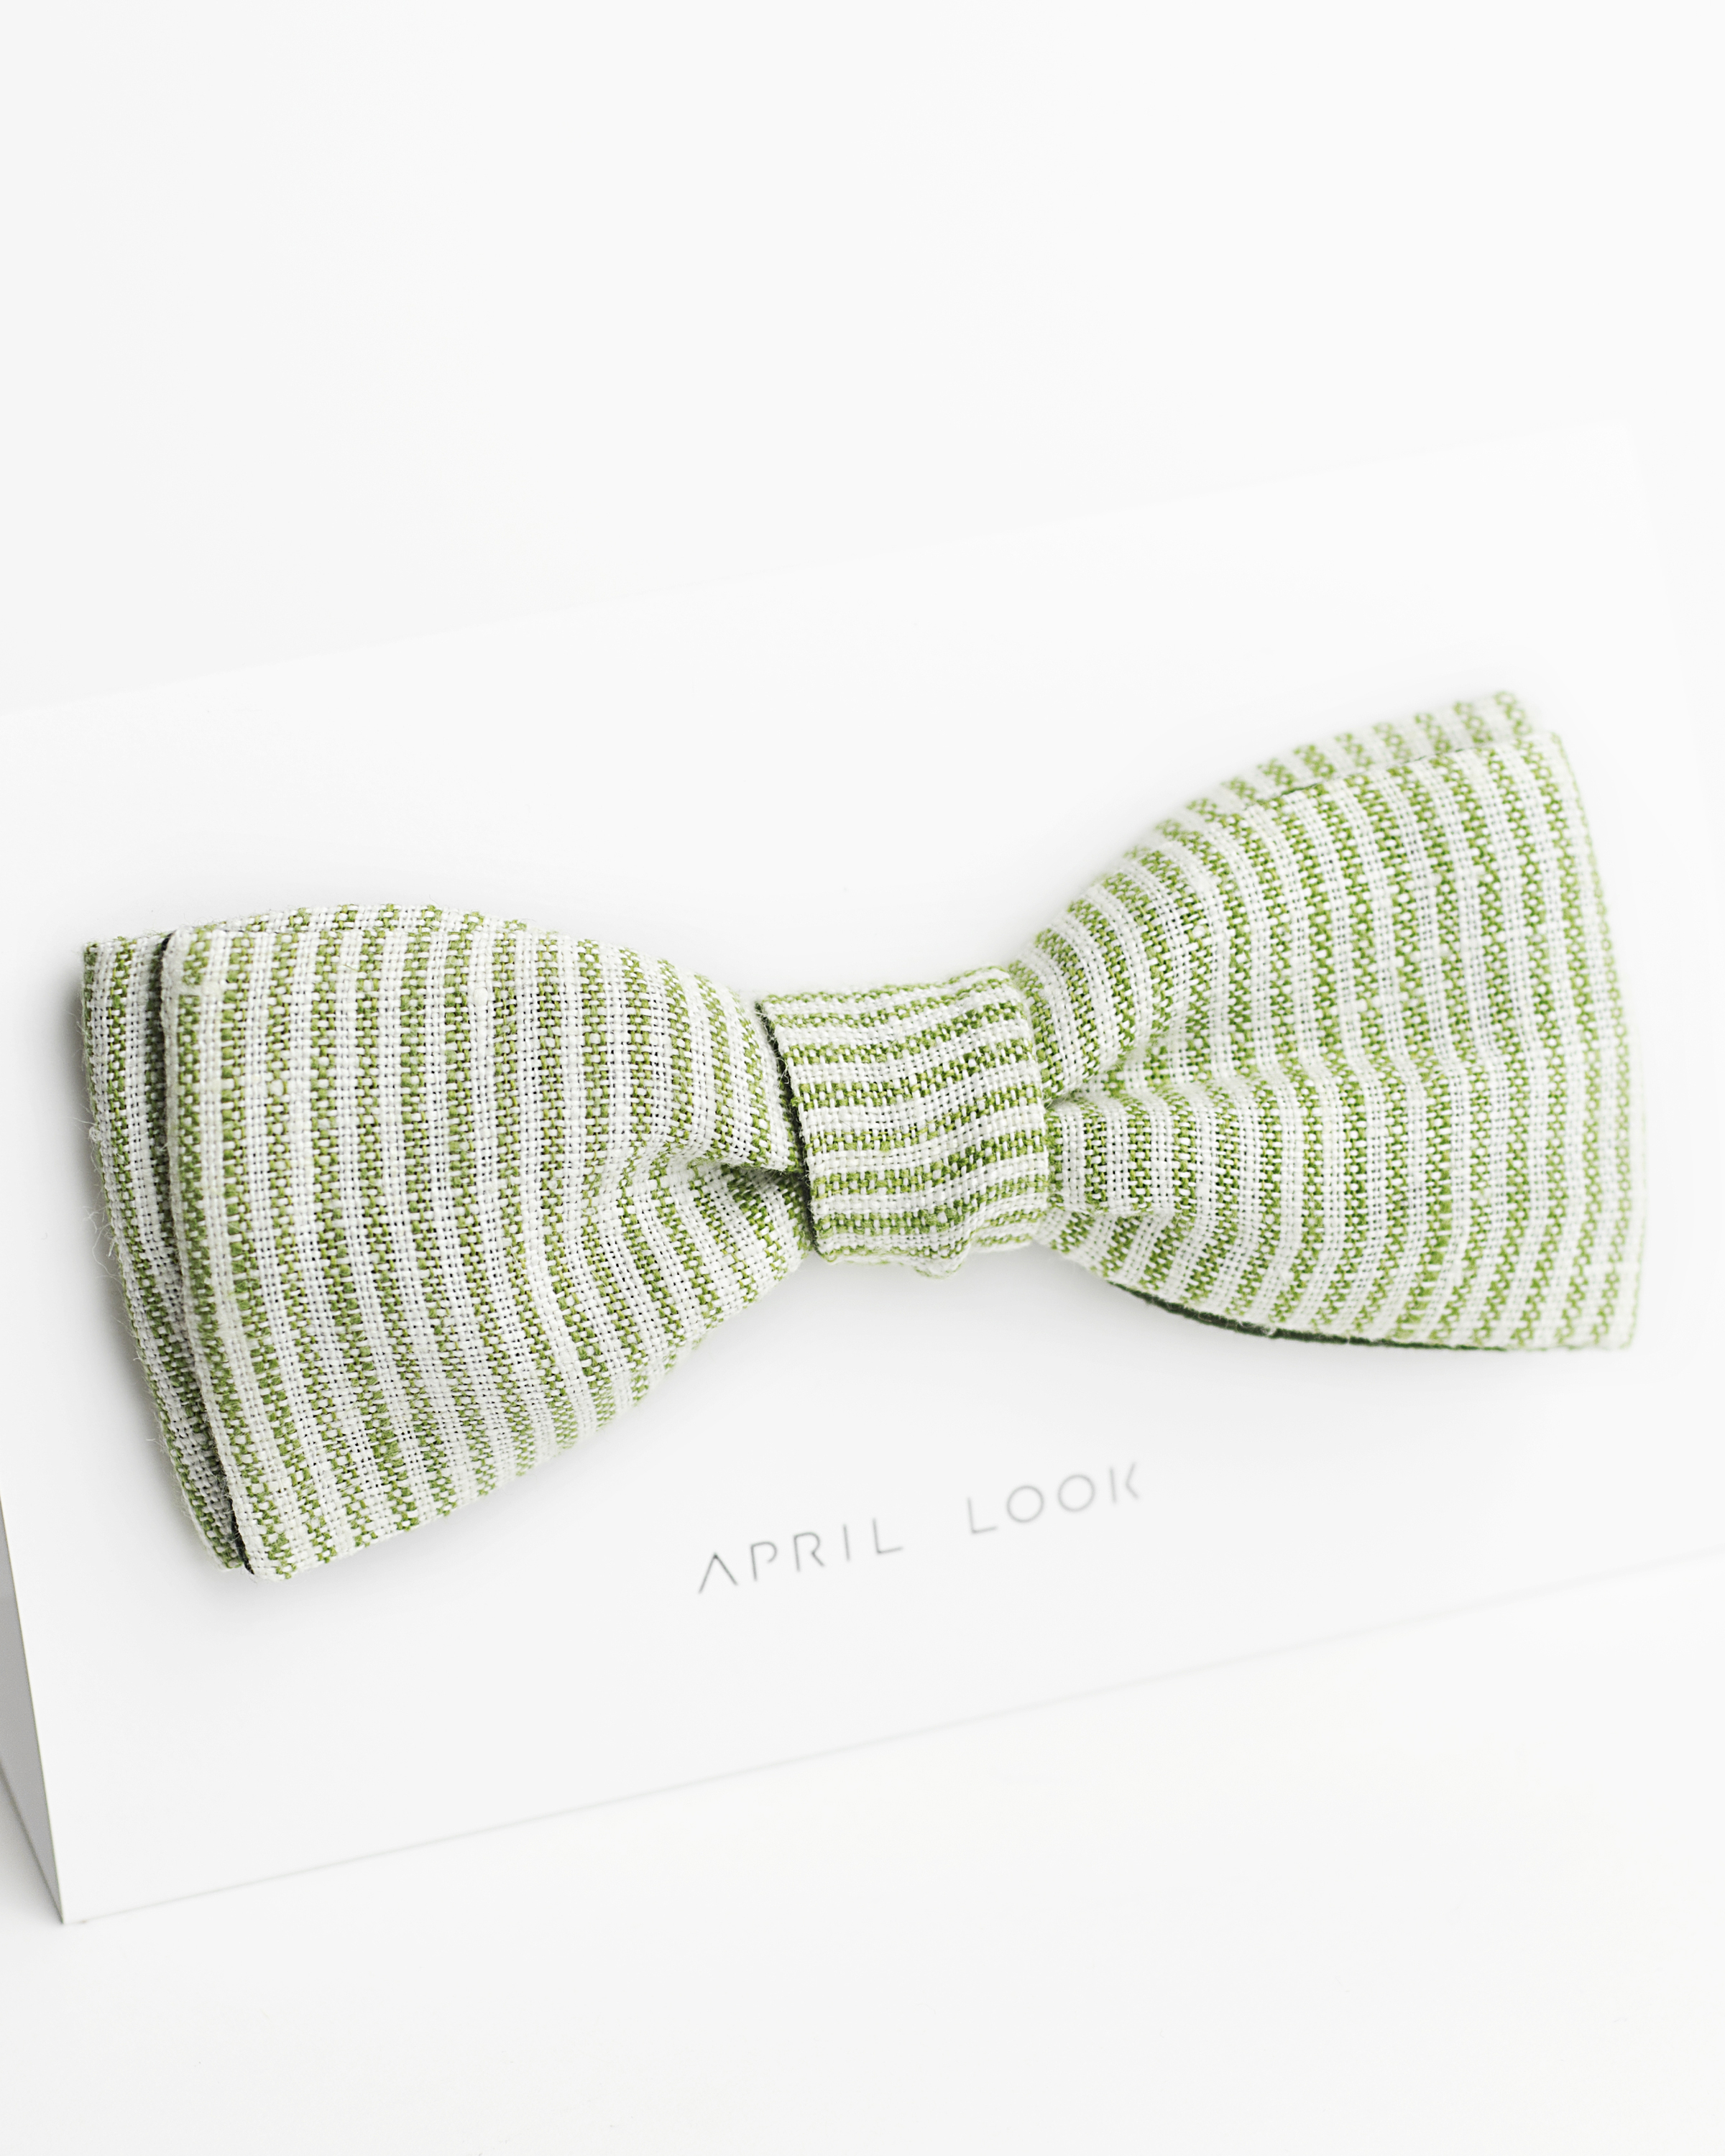 bow-ties-april-look-green-stripes-0814.jpg